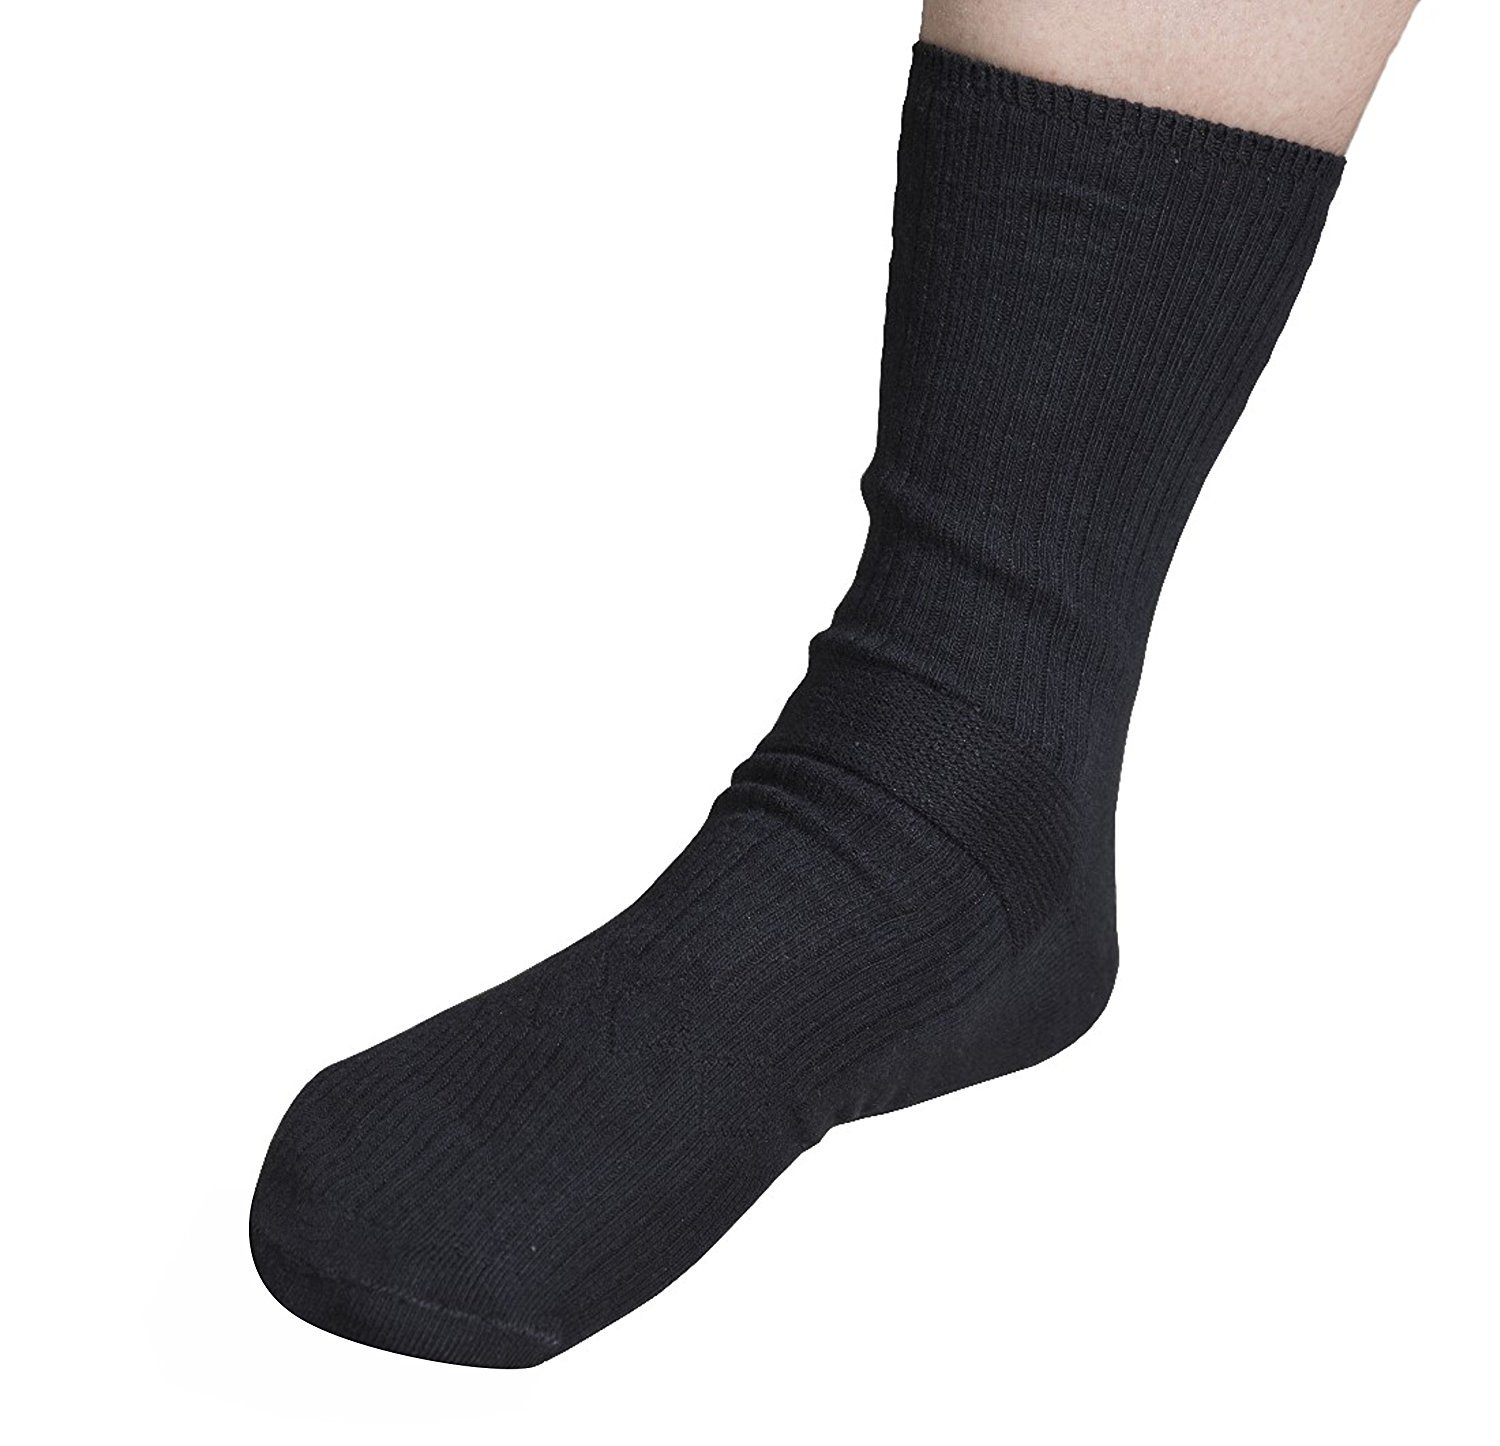 Black Diabetic Gel Socks